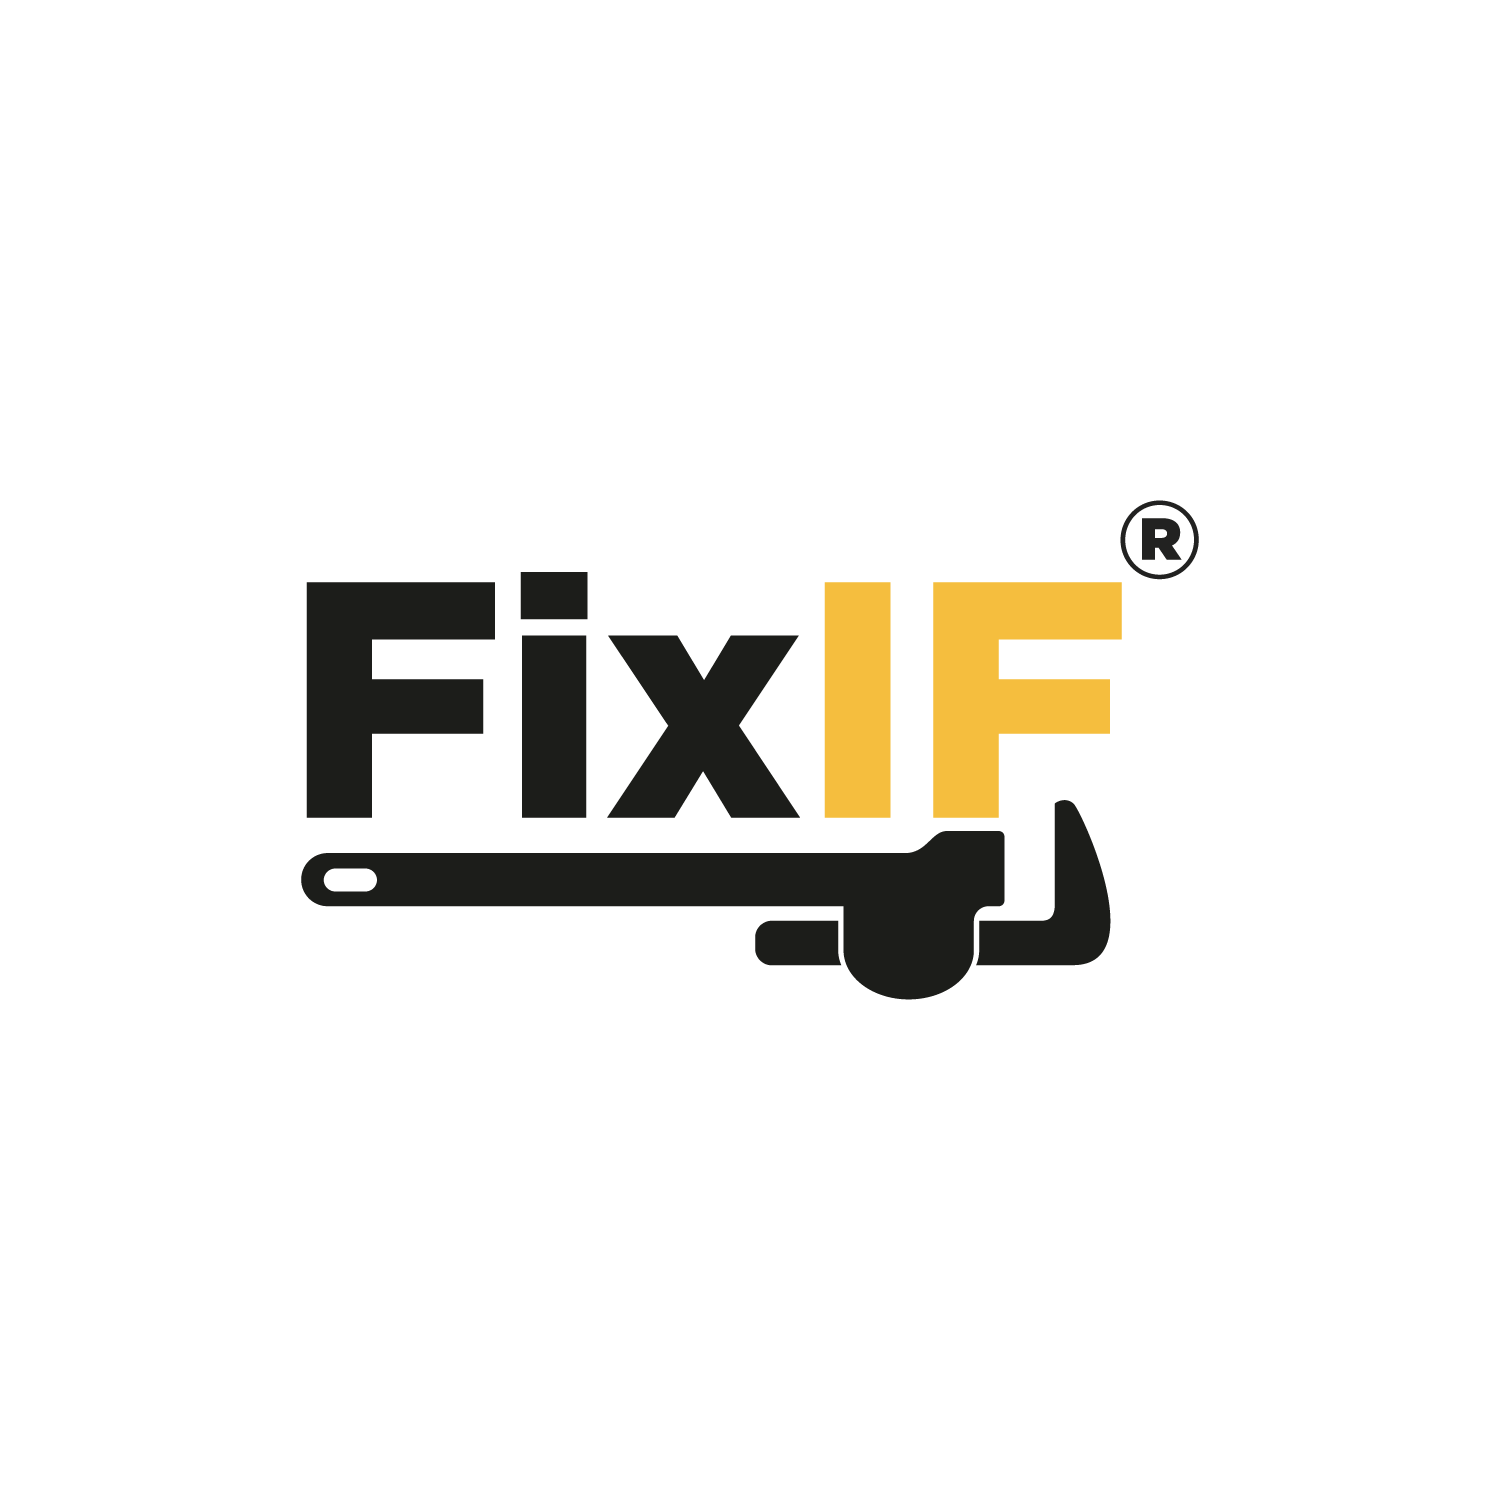 FixIF Emergency Plumber in Upend